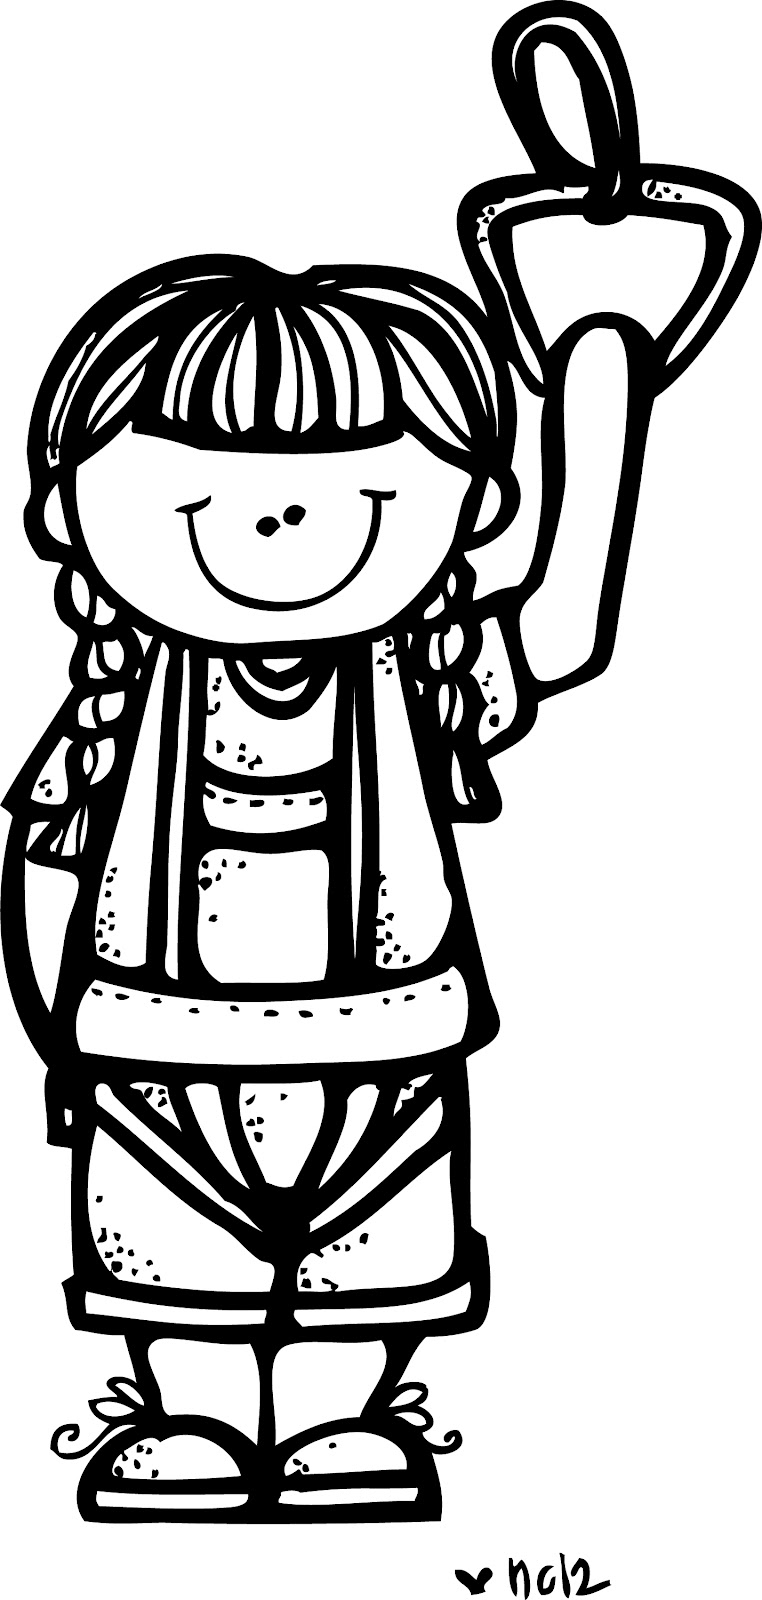 Free Girls Camp Clipart, Download Free Clip Art, Free Clip